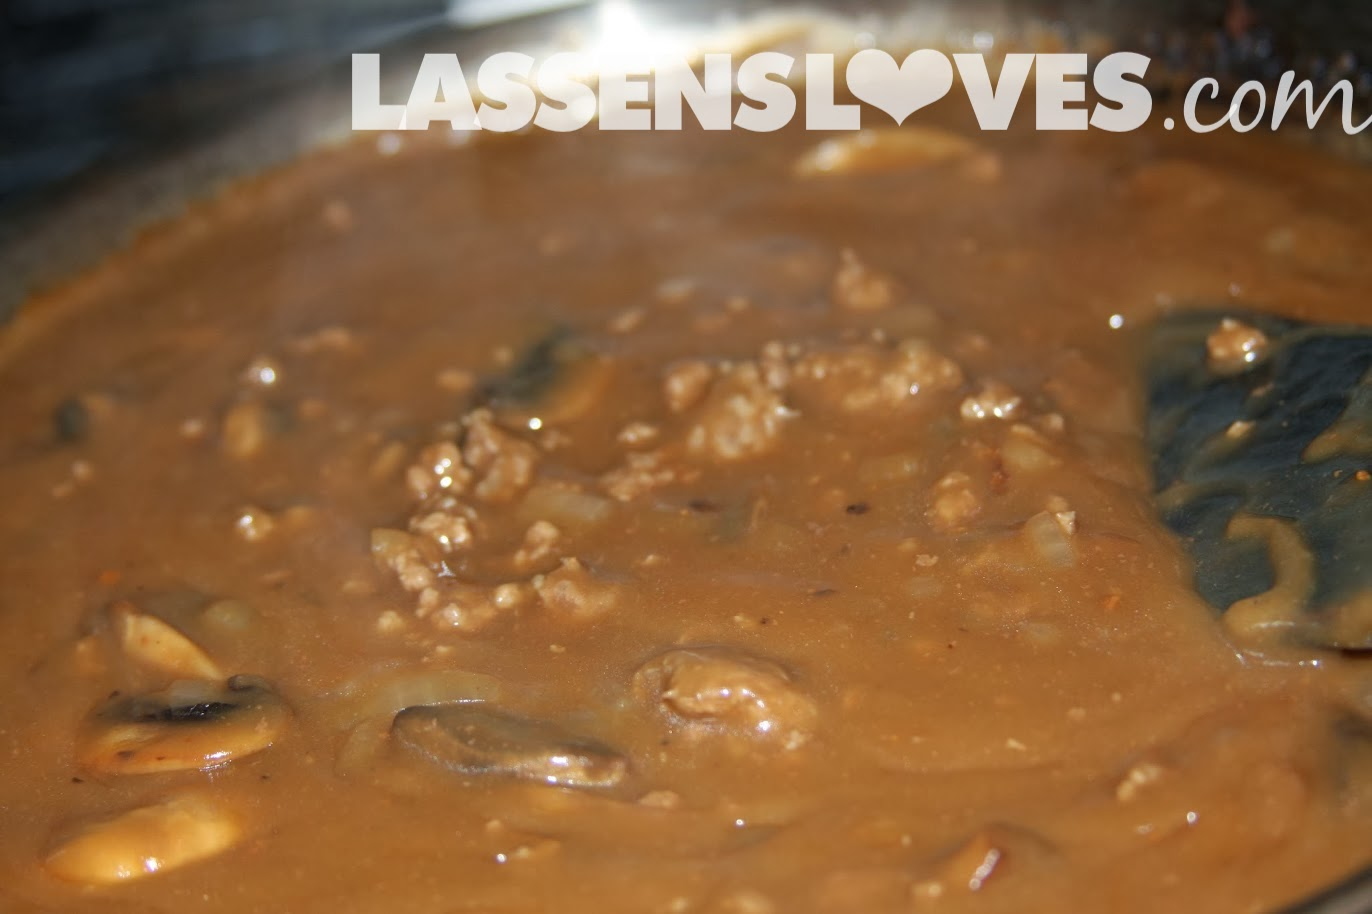 lassensloves.com, Lassen's, Lassens, hamburger+stroganoff, making+gravy